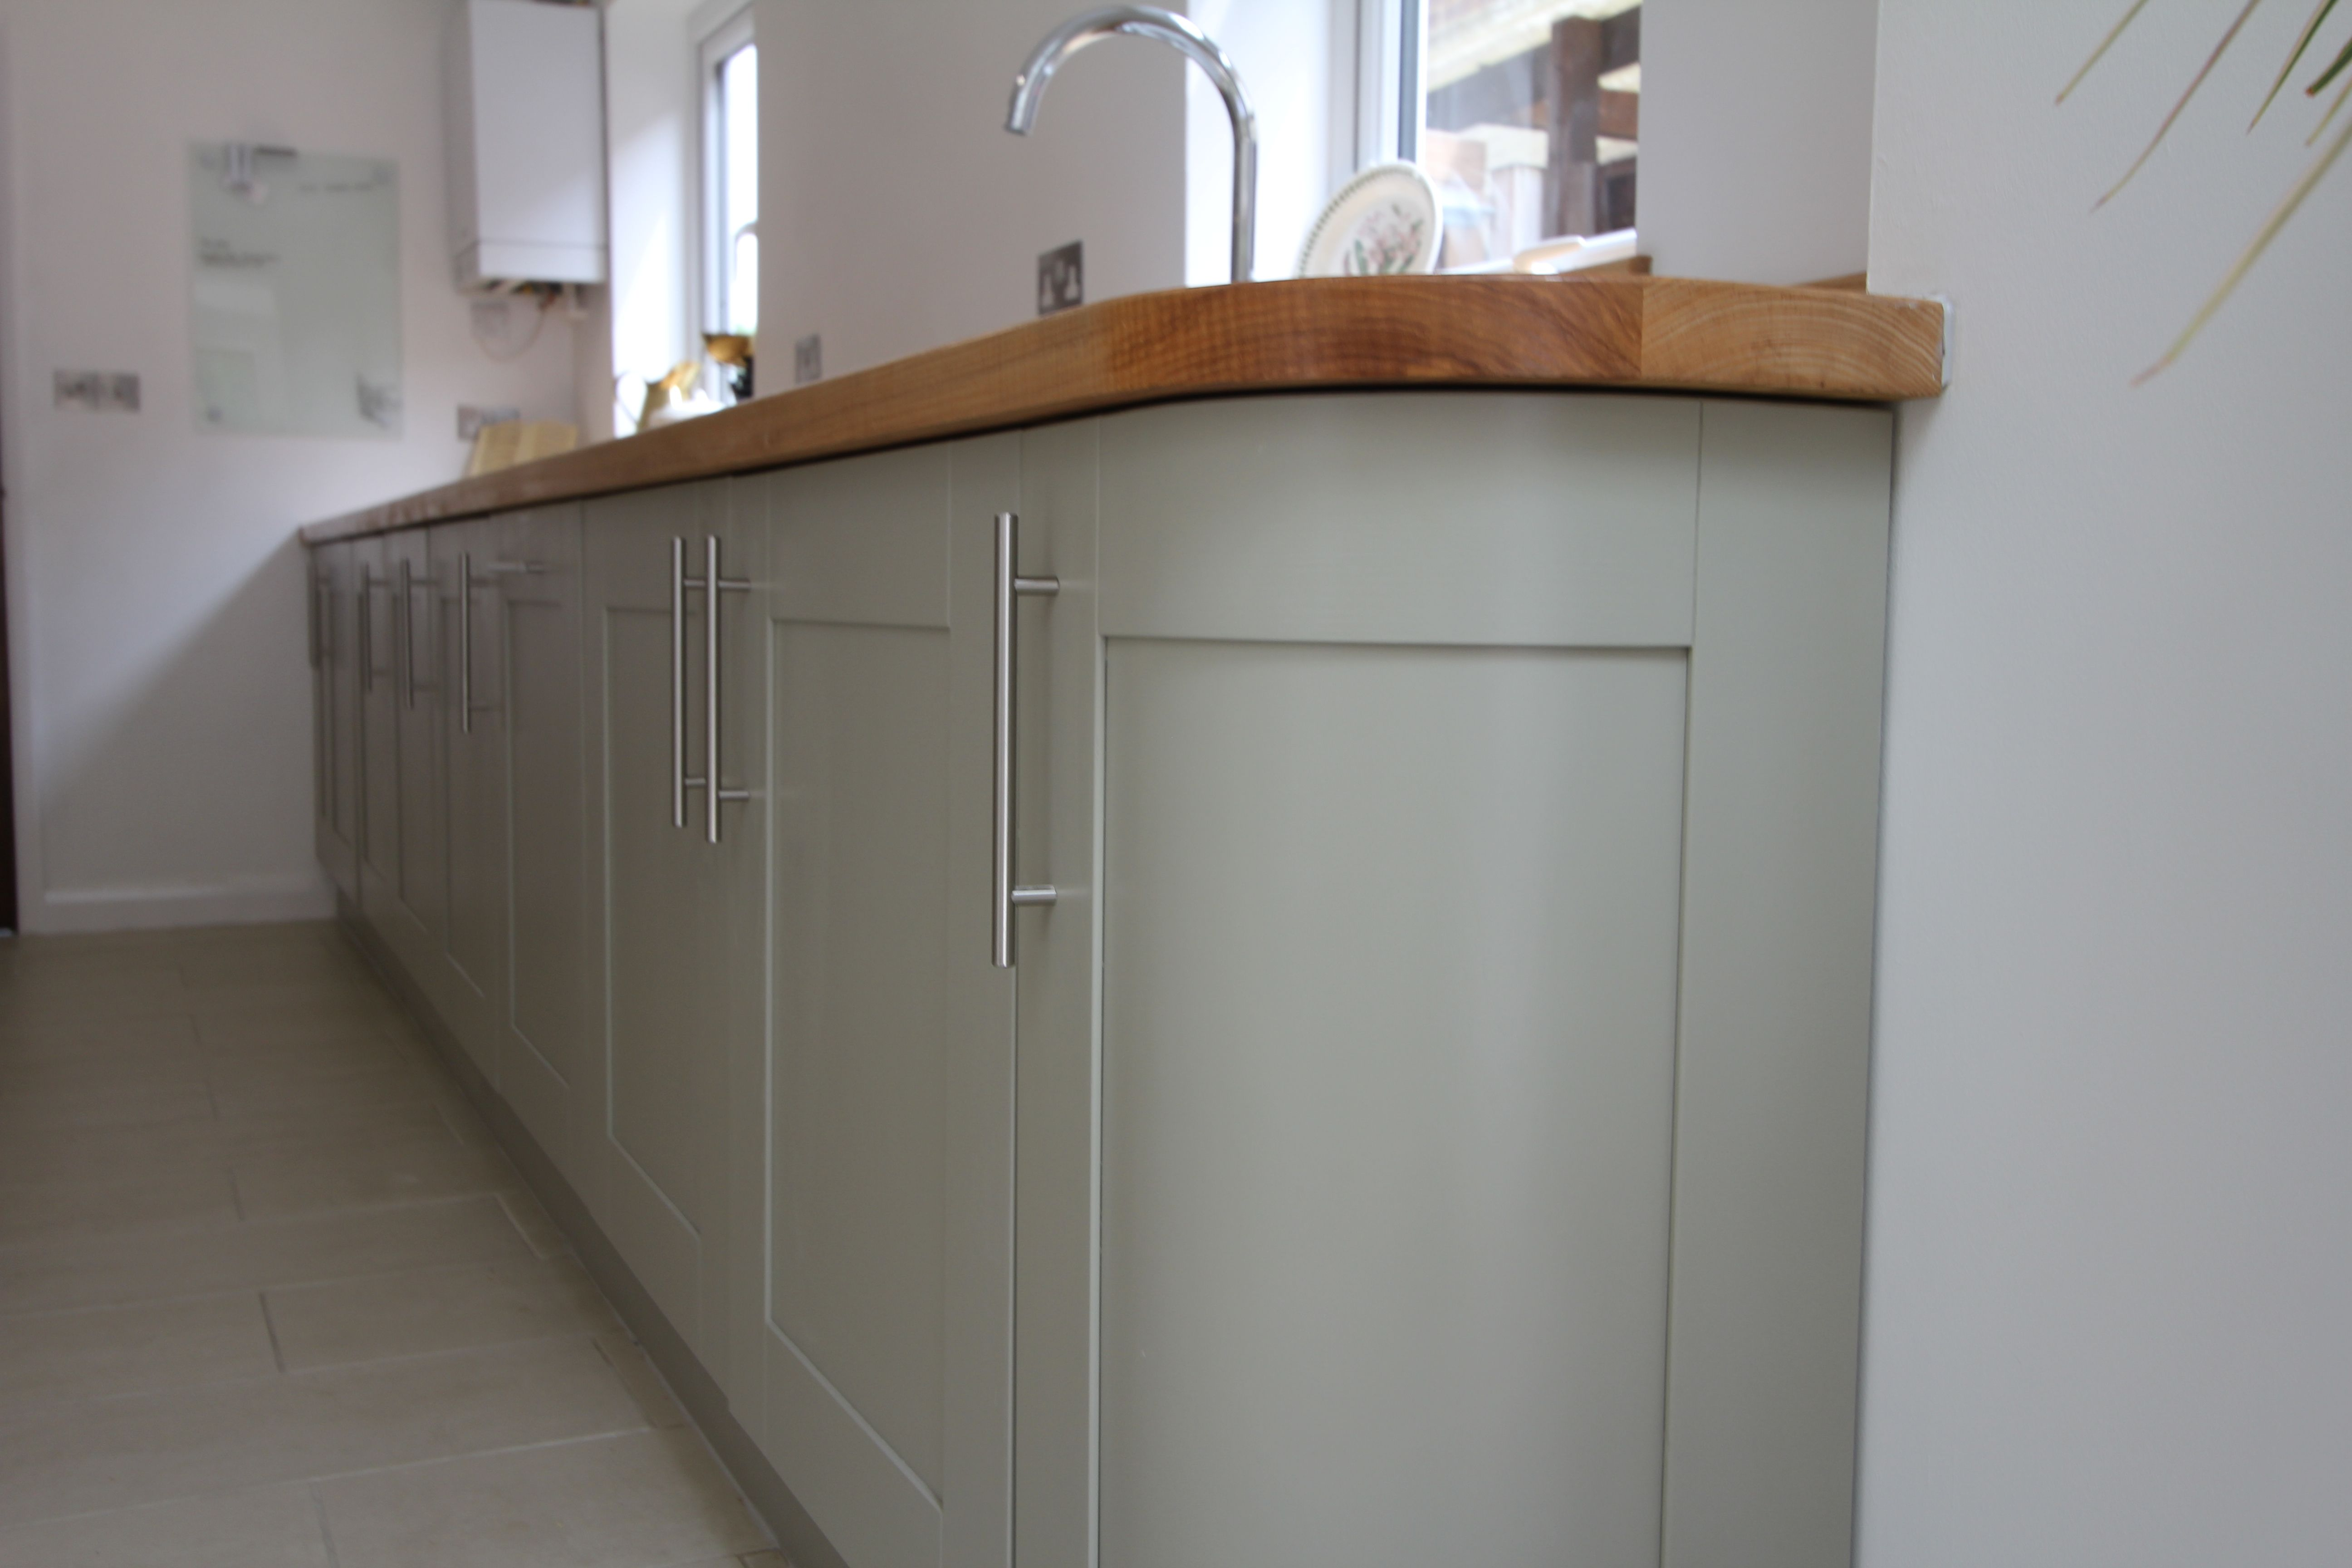 Curved End Unit Completes The Run Of Kitchen Units All Appliances Built Under With A Deep Ceramic Double Sink Home Appliances Kitchen Units 1950s House